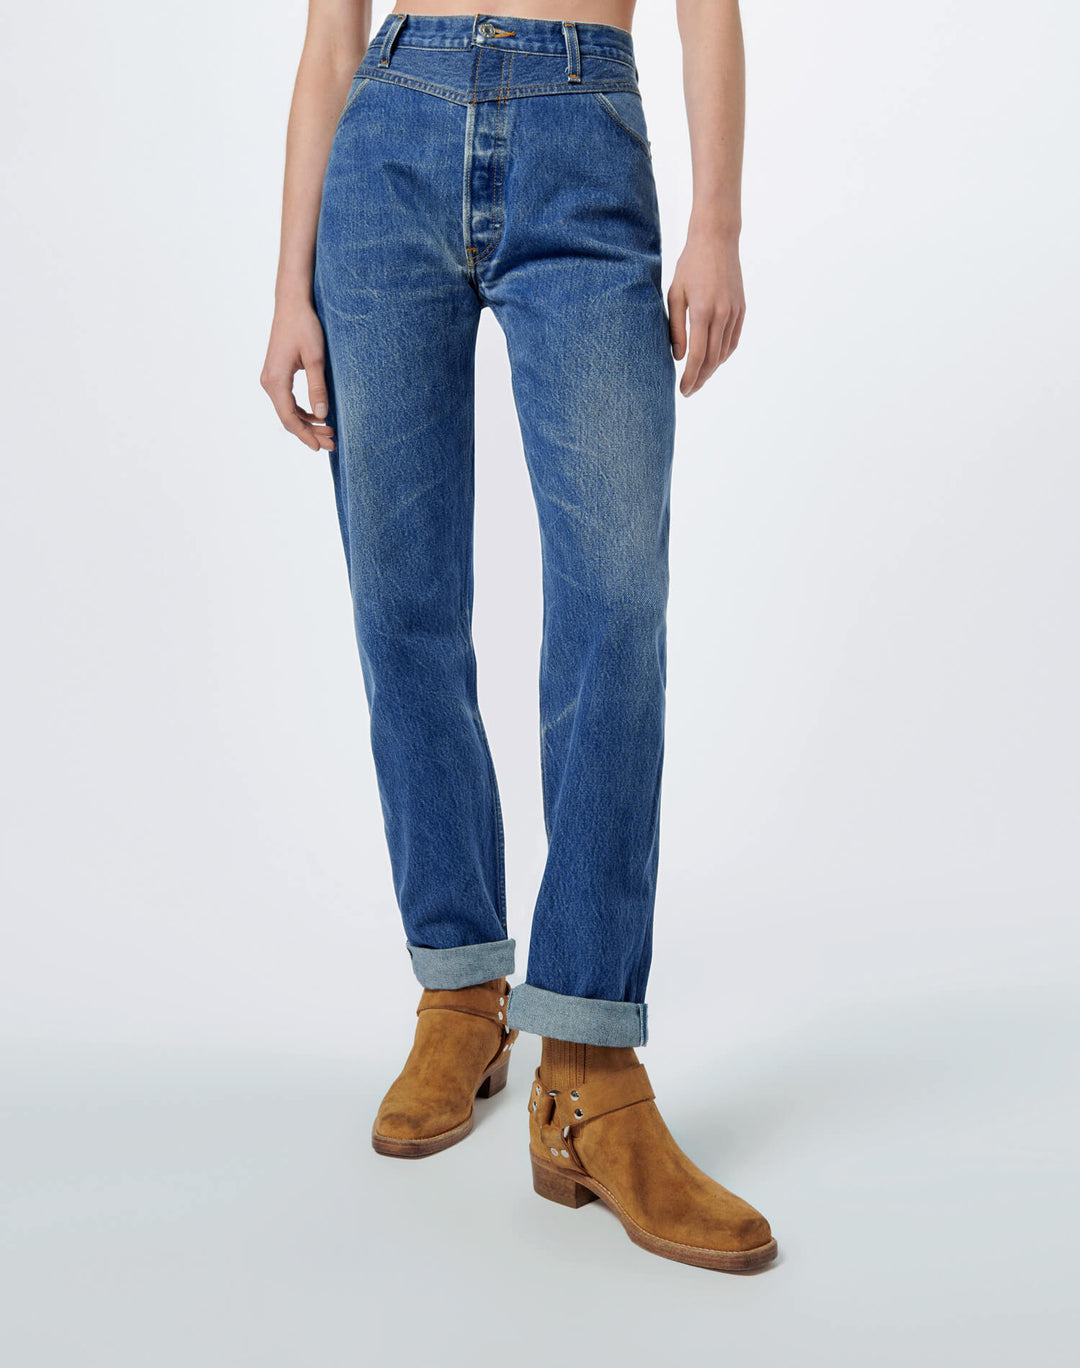 Double Yoke Jean by Re Done, available on shopredone.com for $290 Kaia Gerber Pants SIMILAR PRODUCT